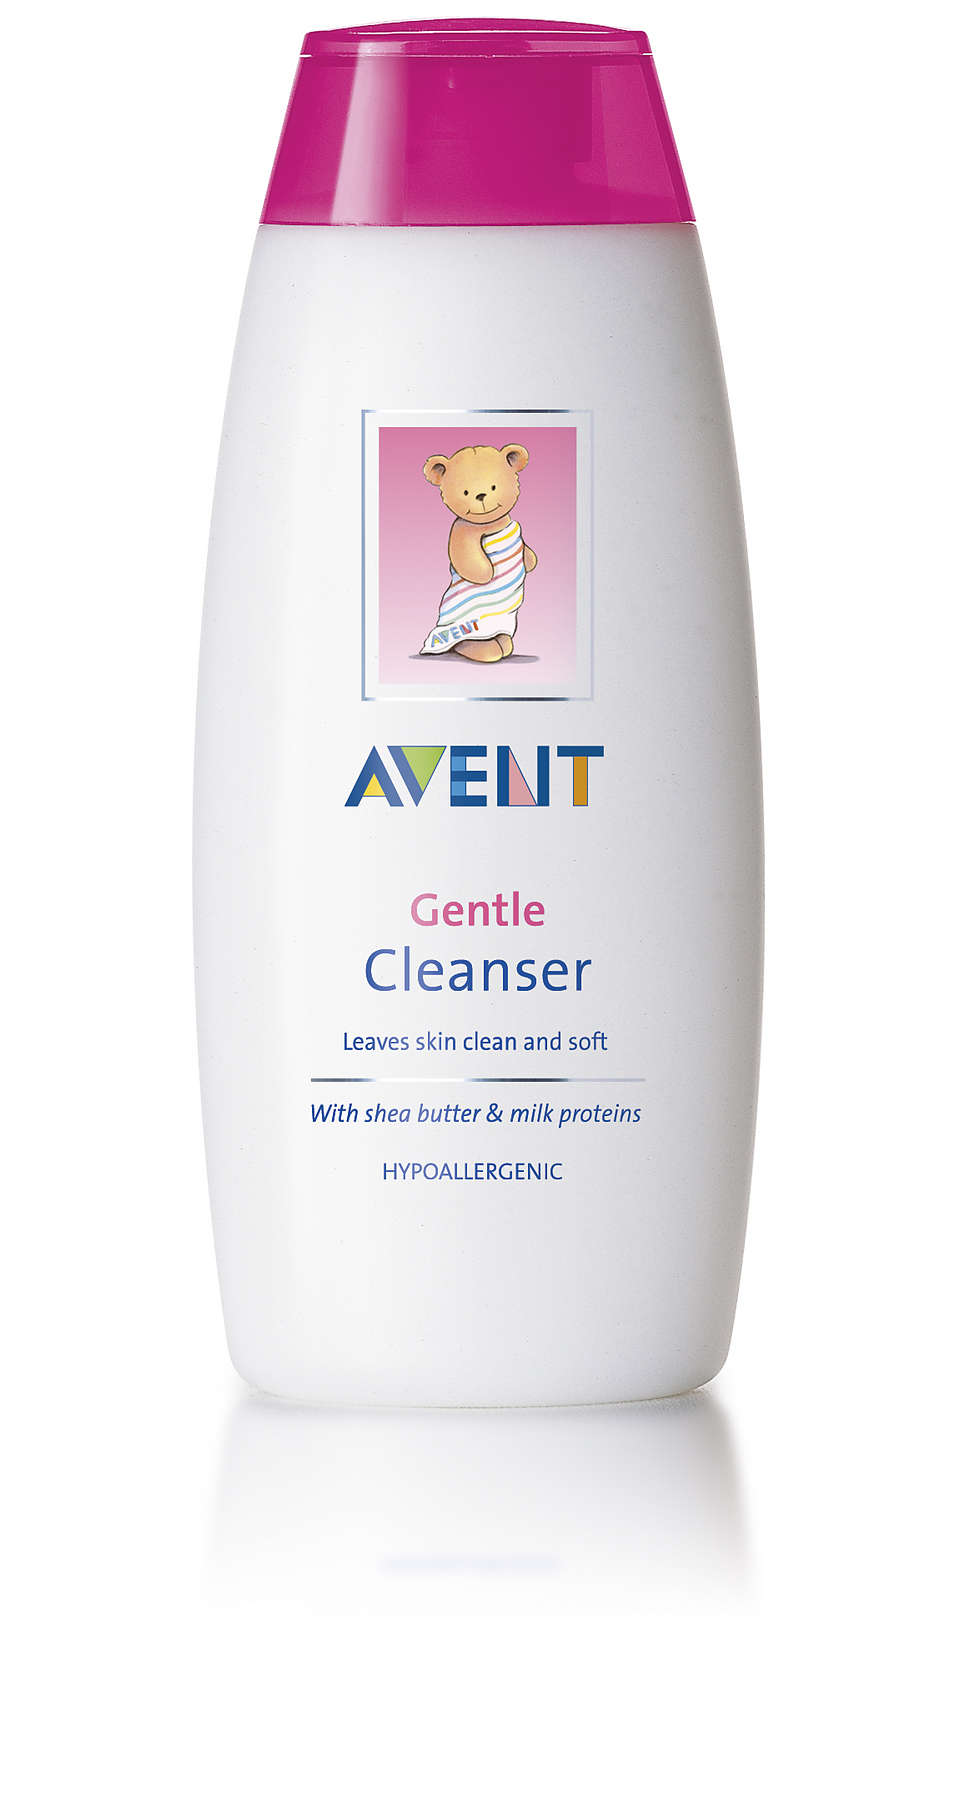 Leaves skin clean and soft